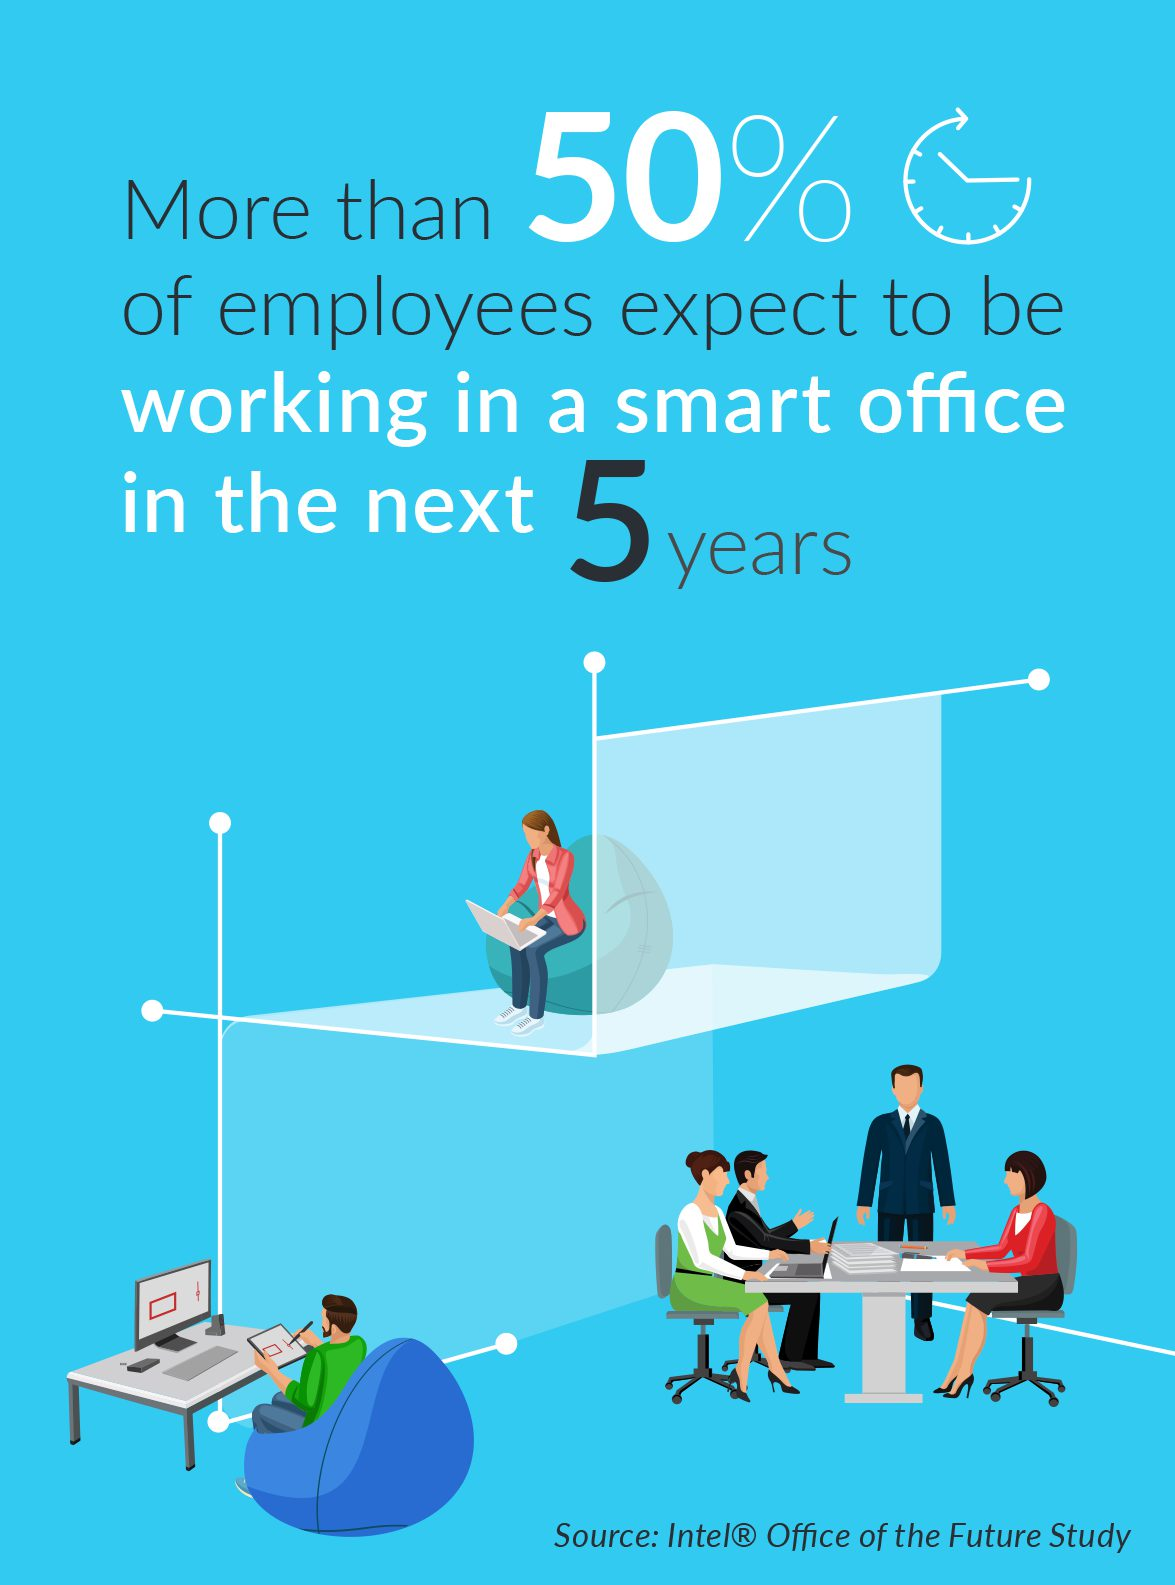 Improve Productivity with Web Conferencing & Smarter Tools